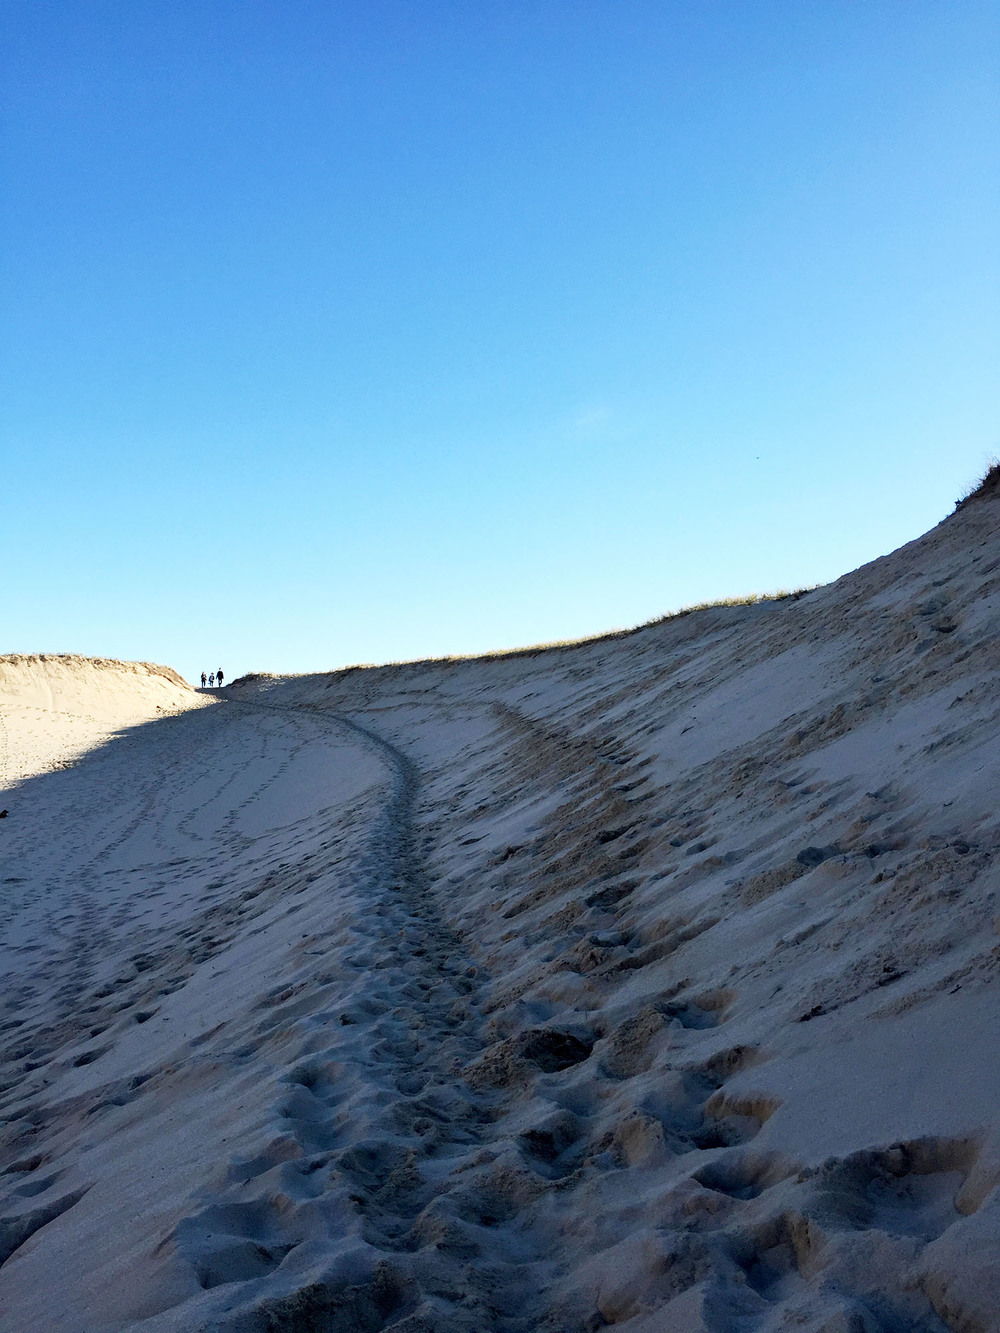 // barefoot walk through the sand dunes east of Provincetown,to the Atlantic shoreline